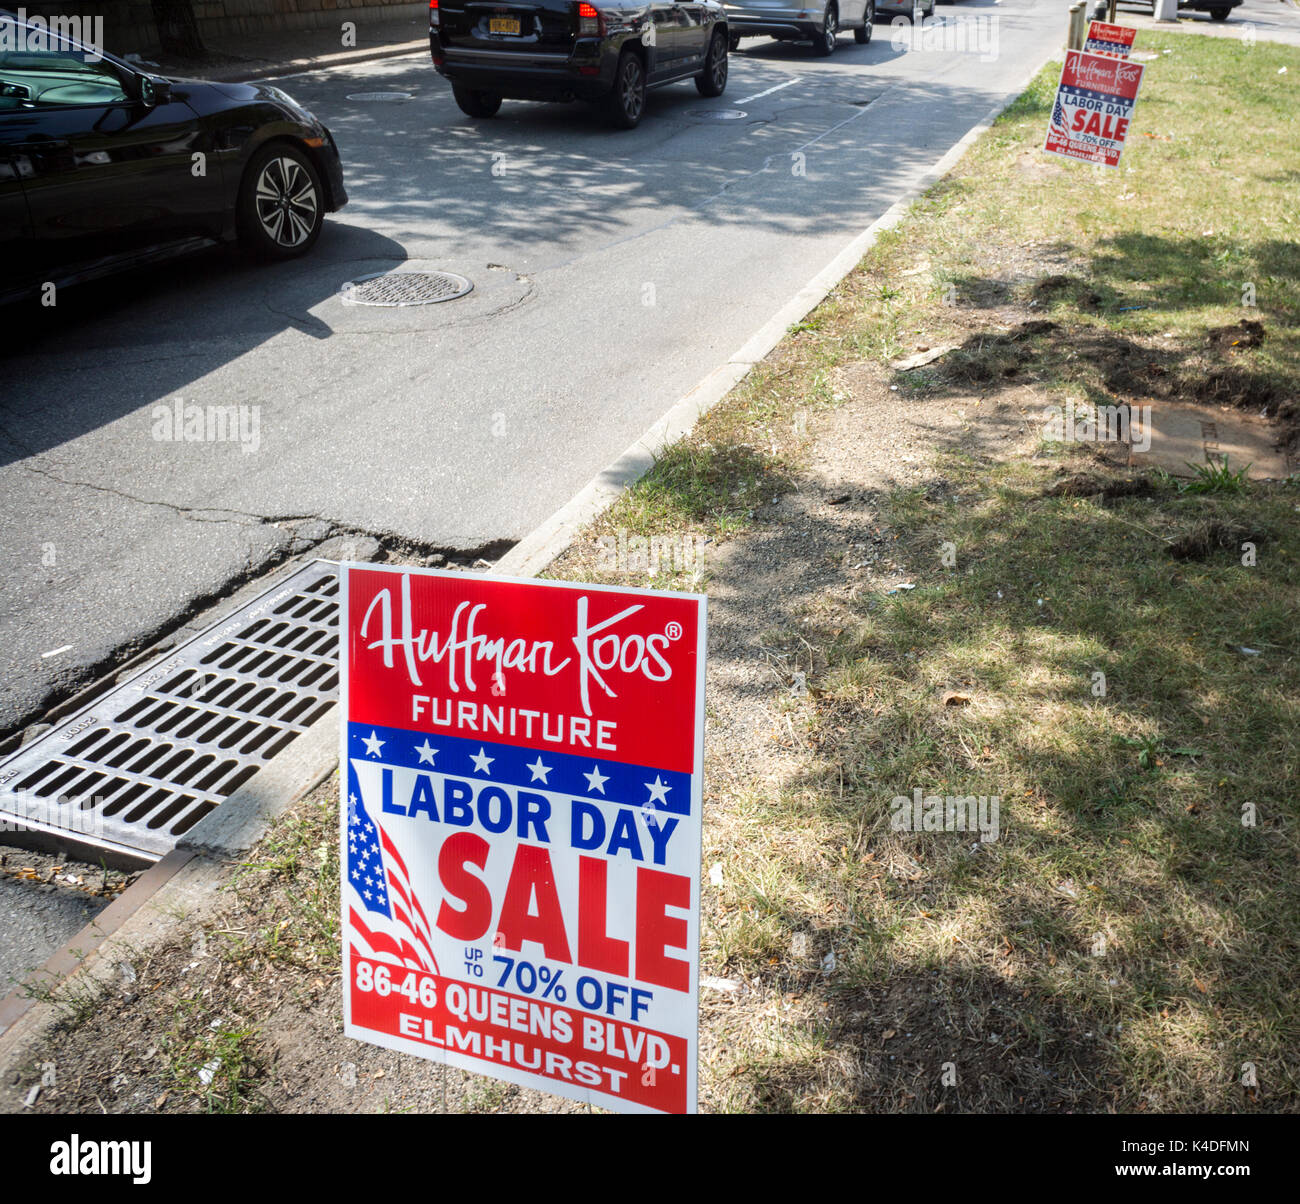 Signs placed along Queens boulevard in Queens In New York advertise the Labor Day sale of the Huffman Koos chain Stock Photo